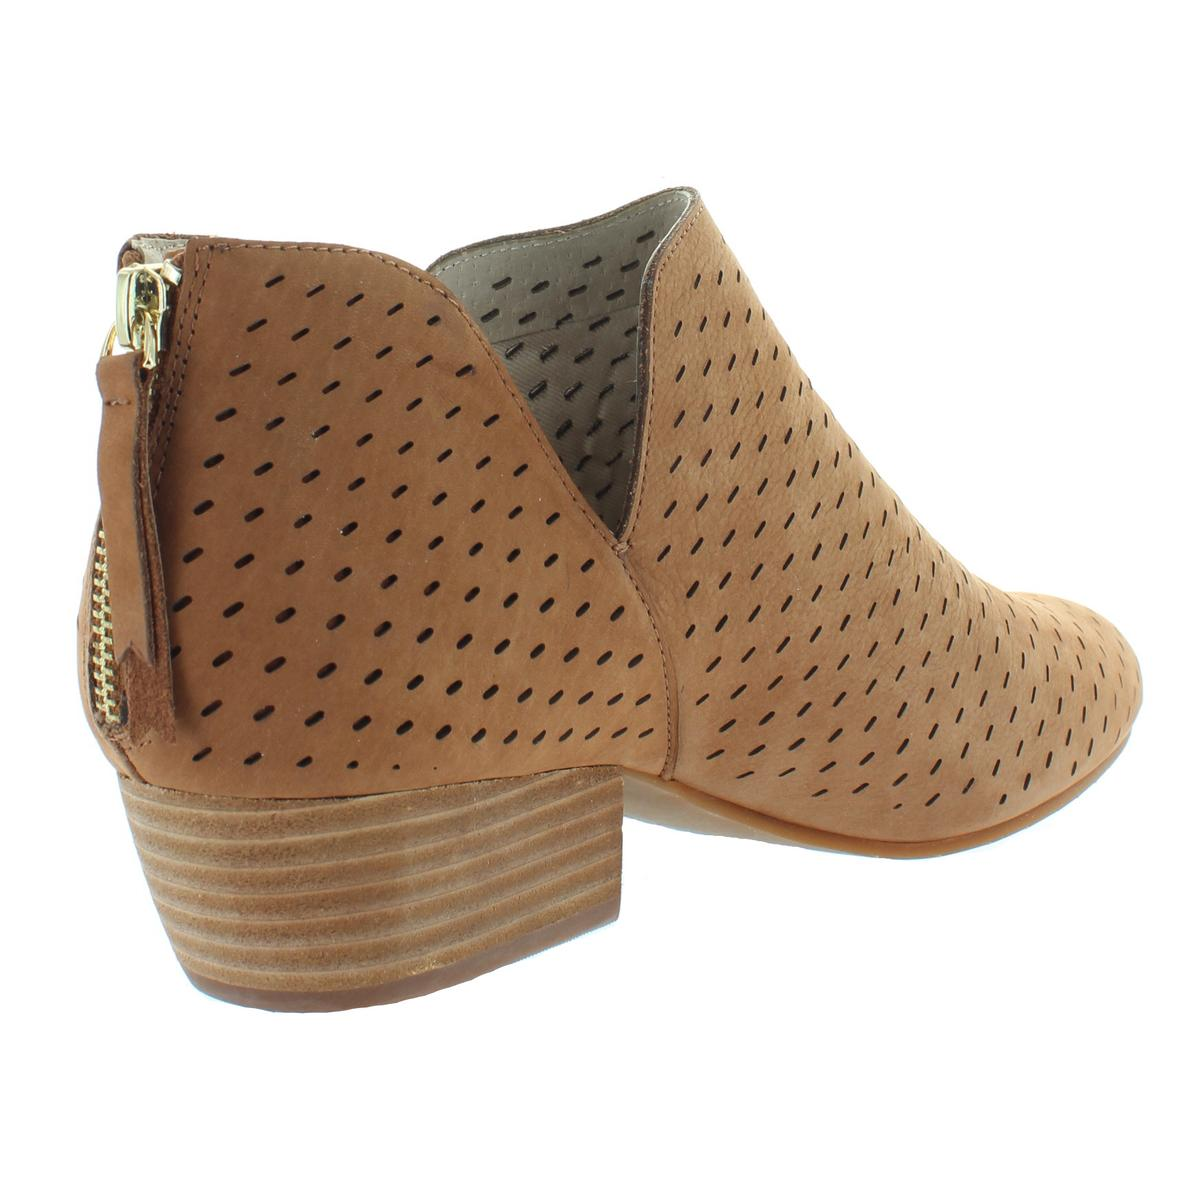 Kenneth Cole New York Womens Cooper7 Leather Leather Leather Ankle Booties Heels BHFO 4314 1023f8